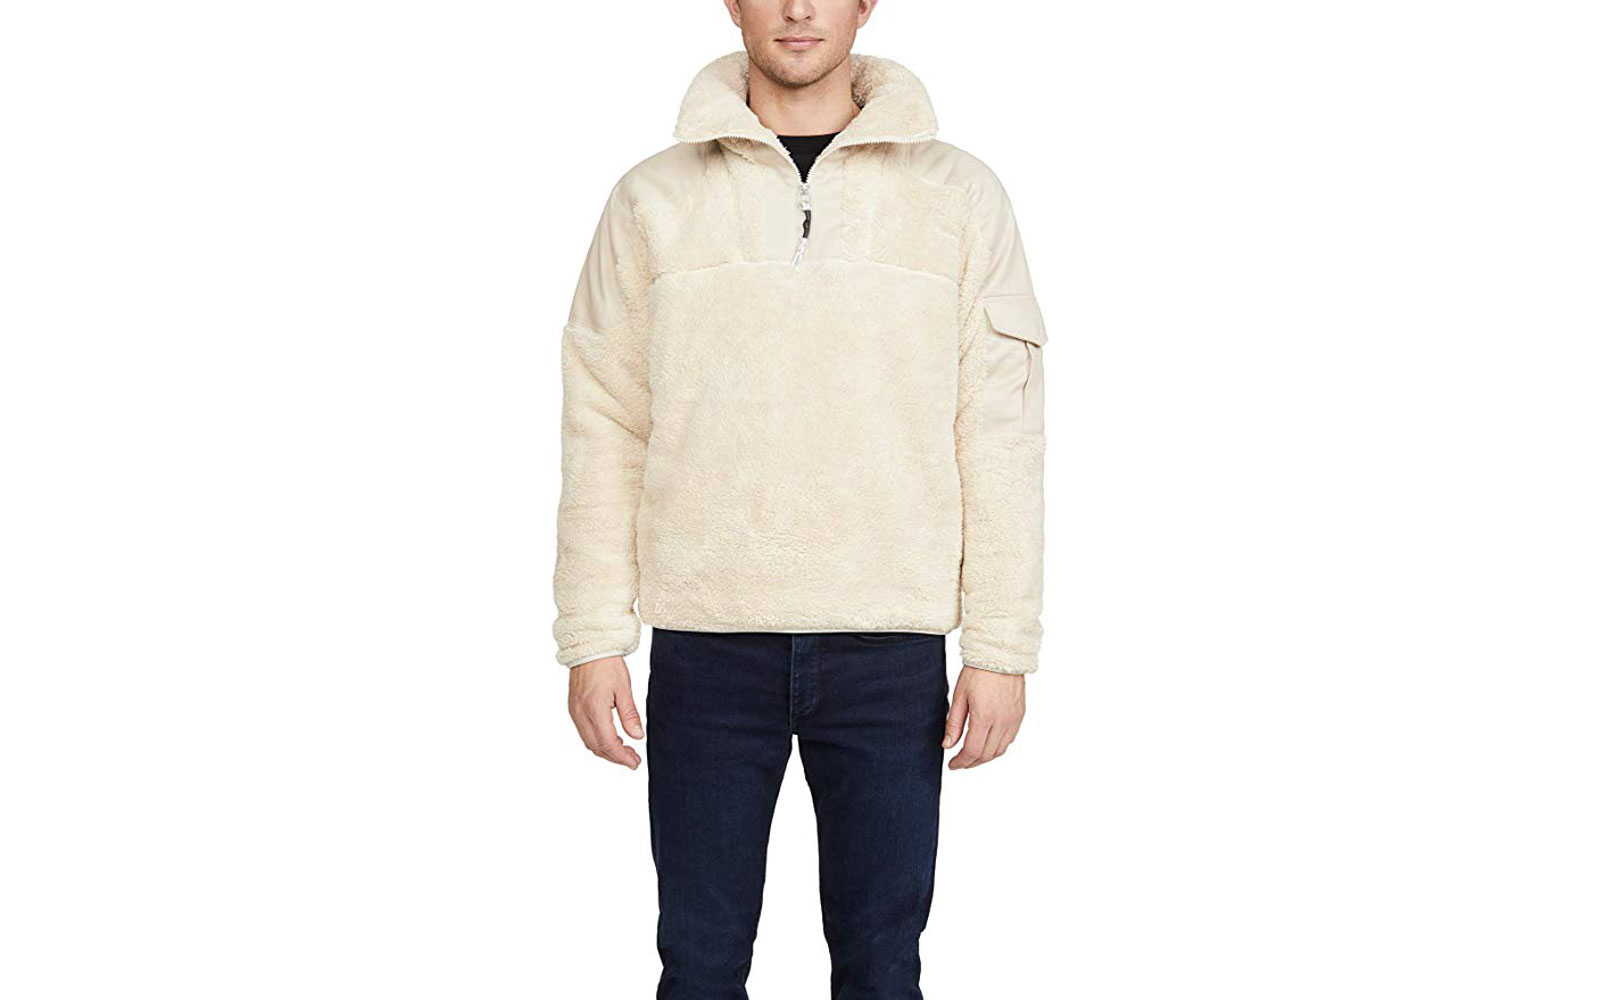 Men's Cream Sherpa Pullover Jacket